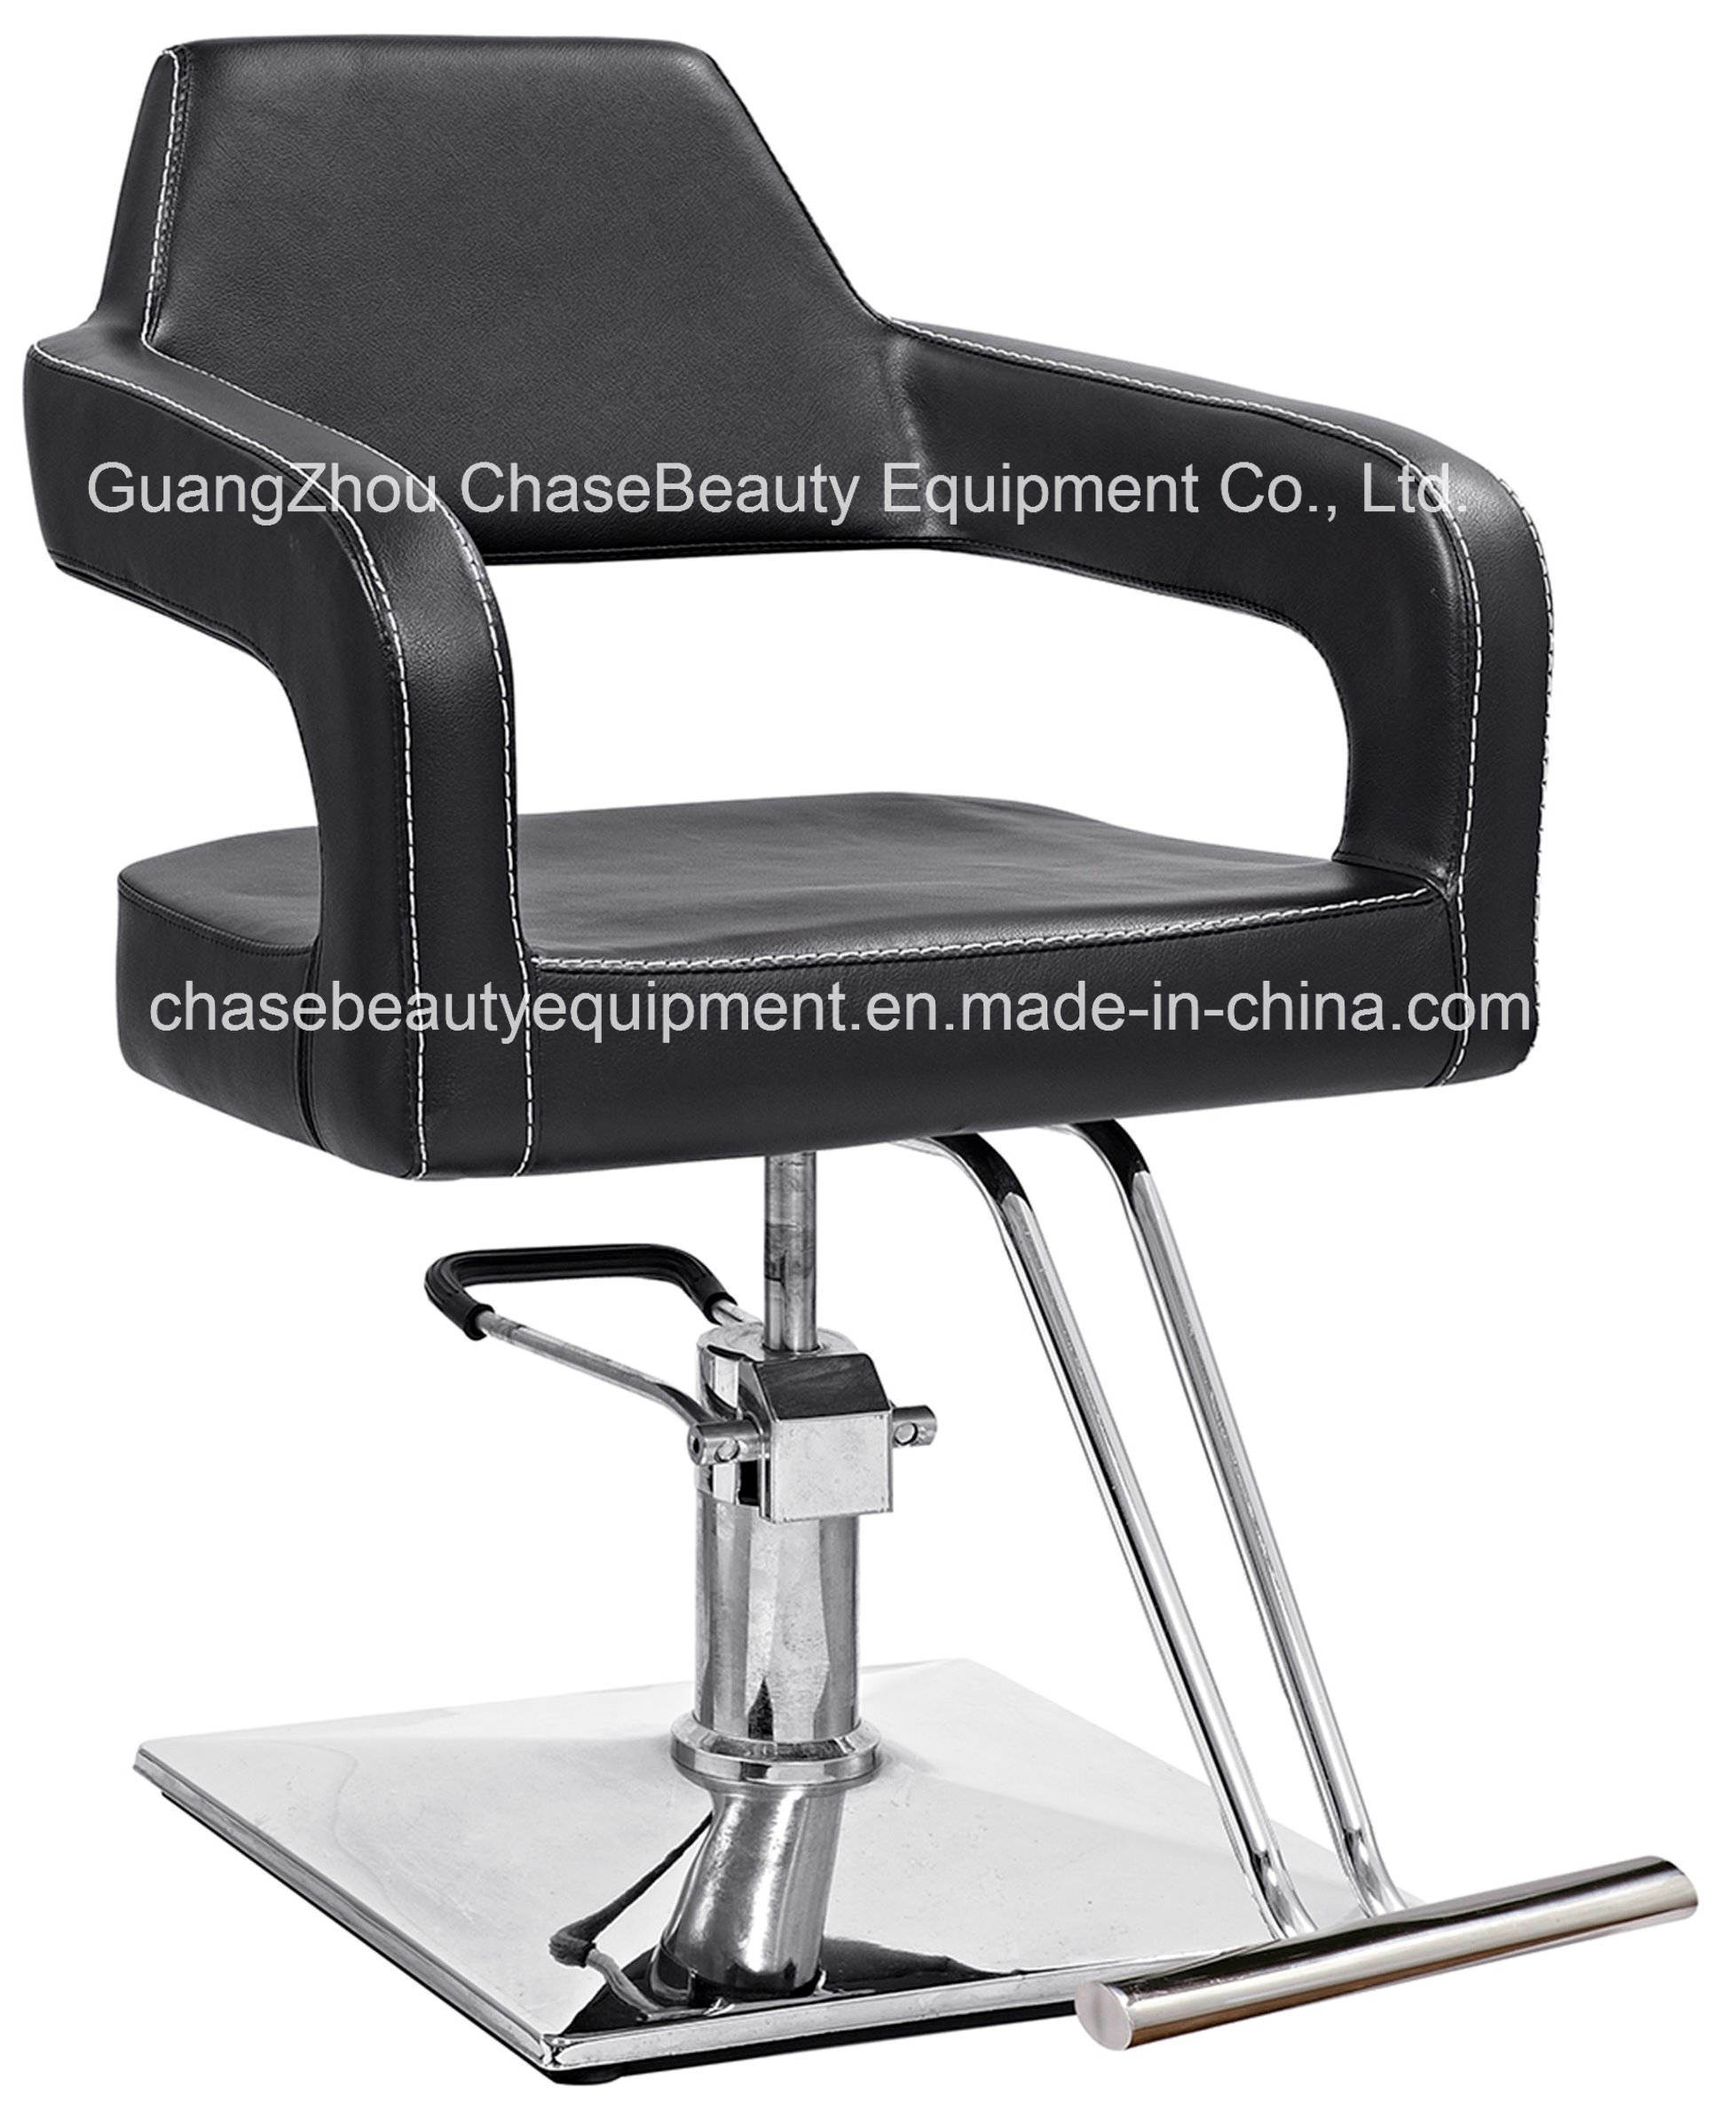 China hot selling new barber chair styling salon furniture for Sell salon equipment